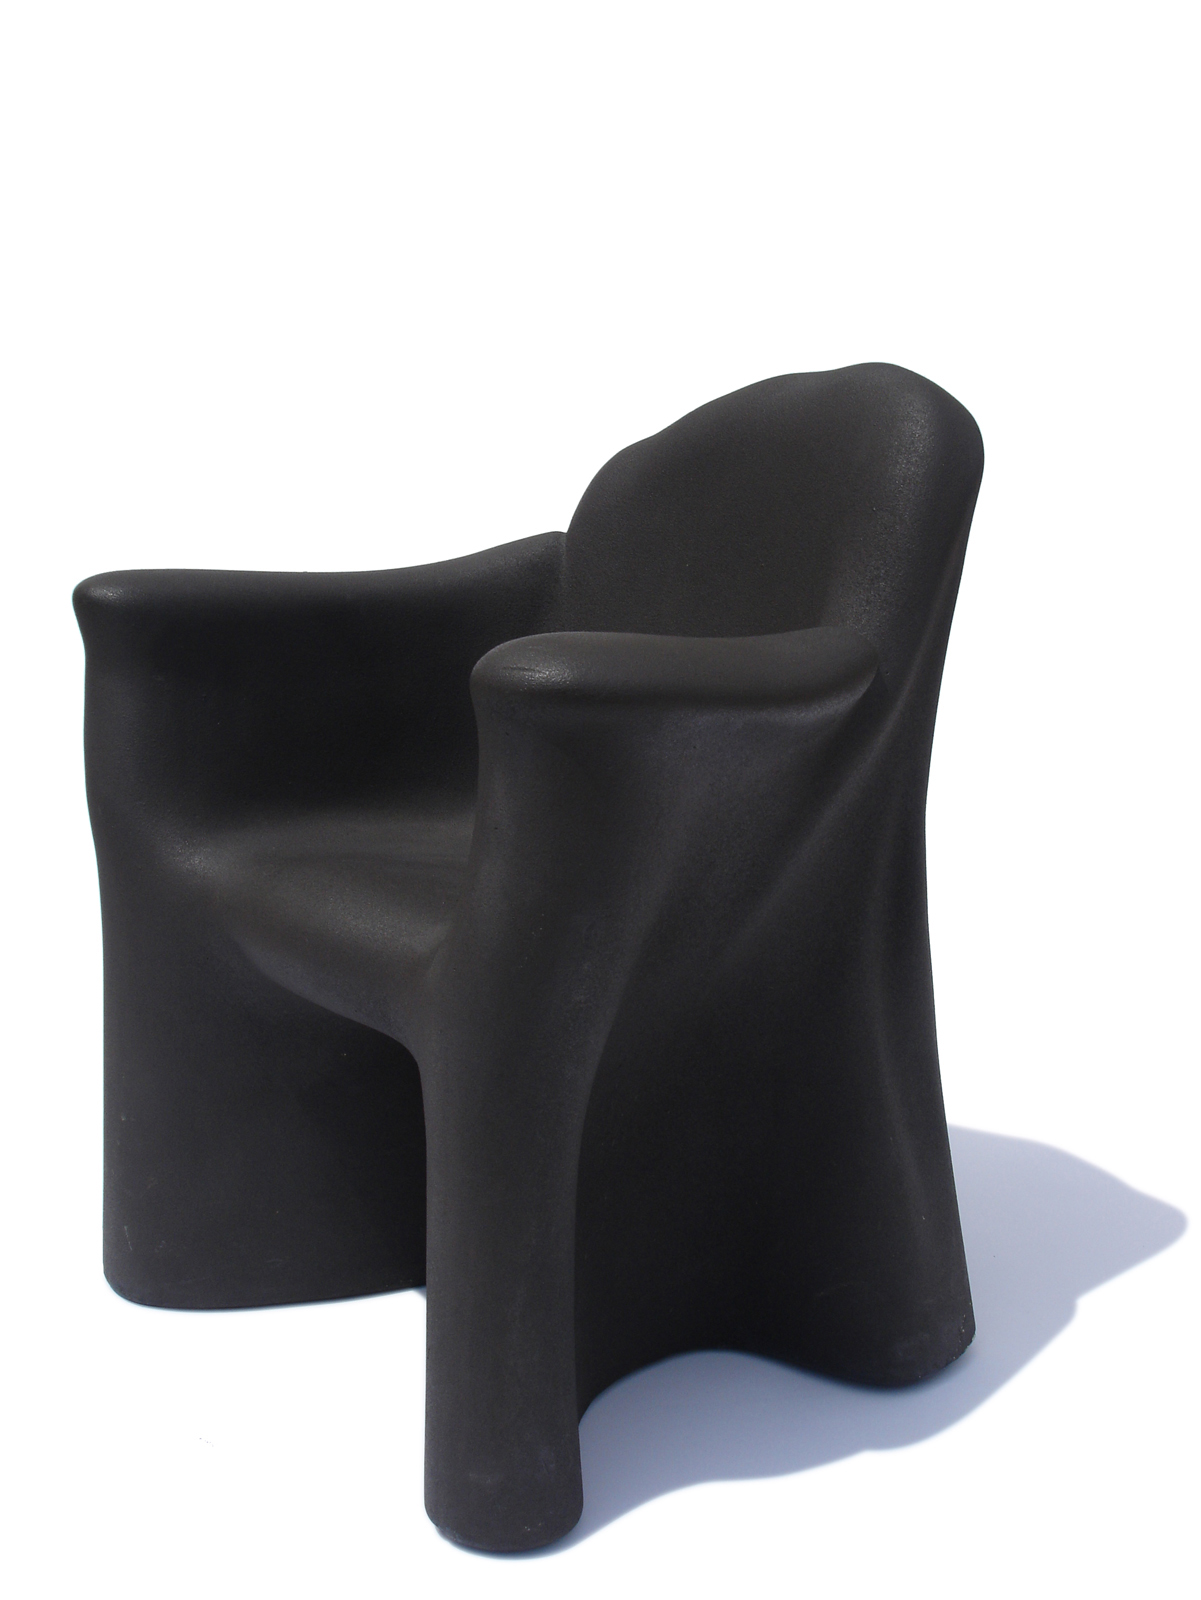 Dalila Tre chair, 1980, of molded polyurethane with epoxy resin.